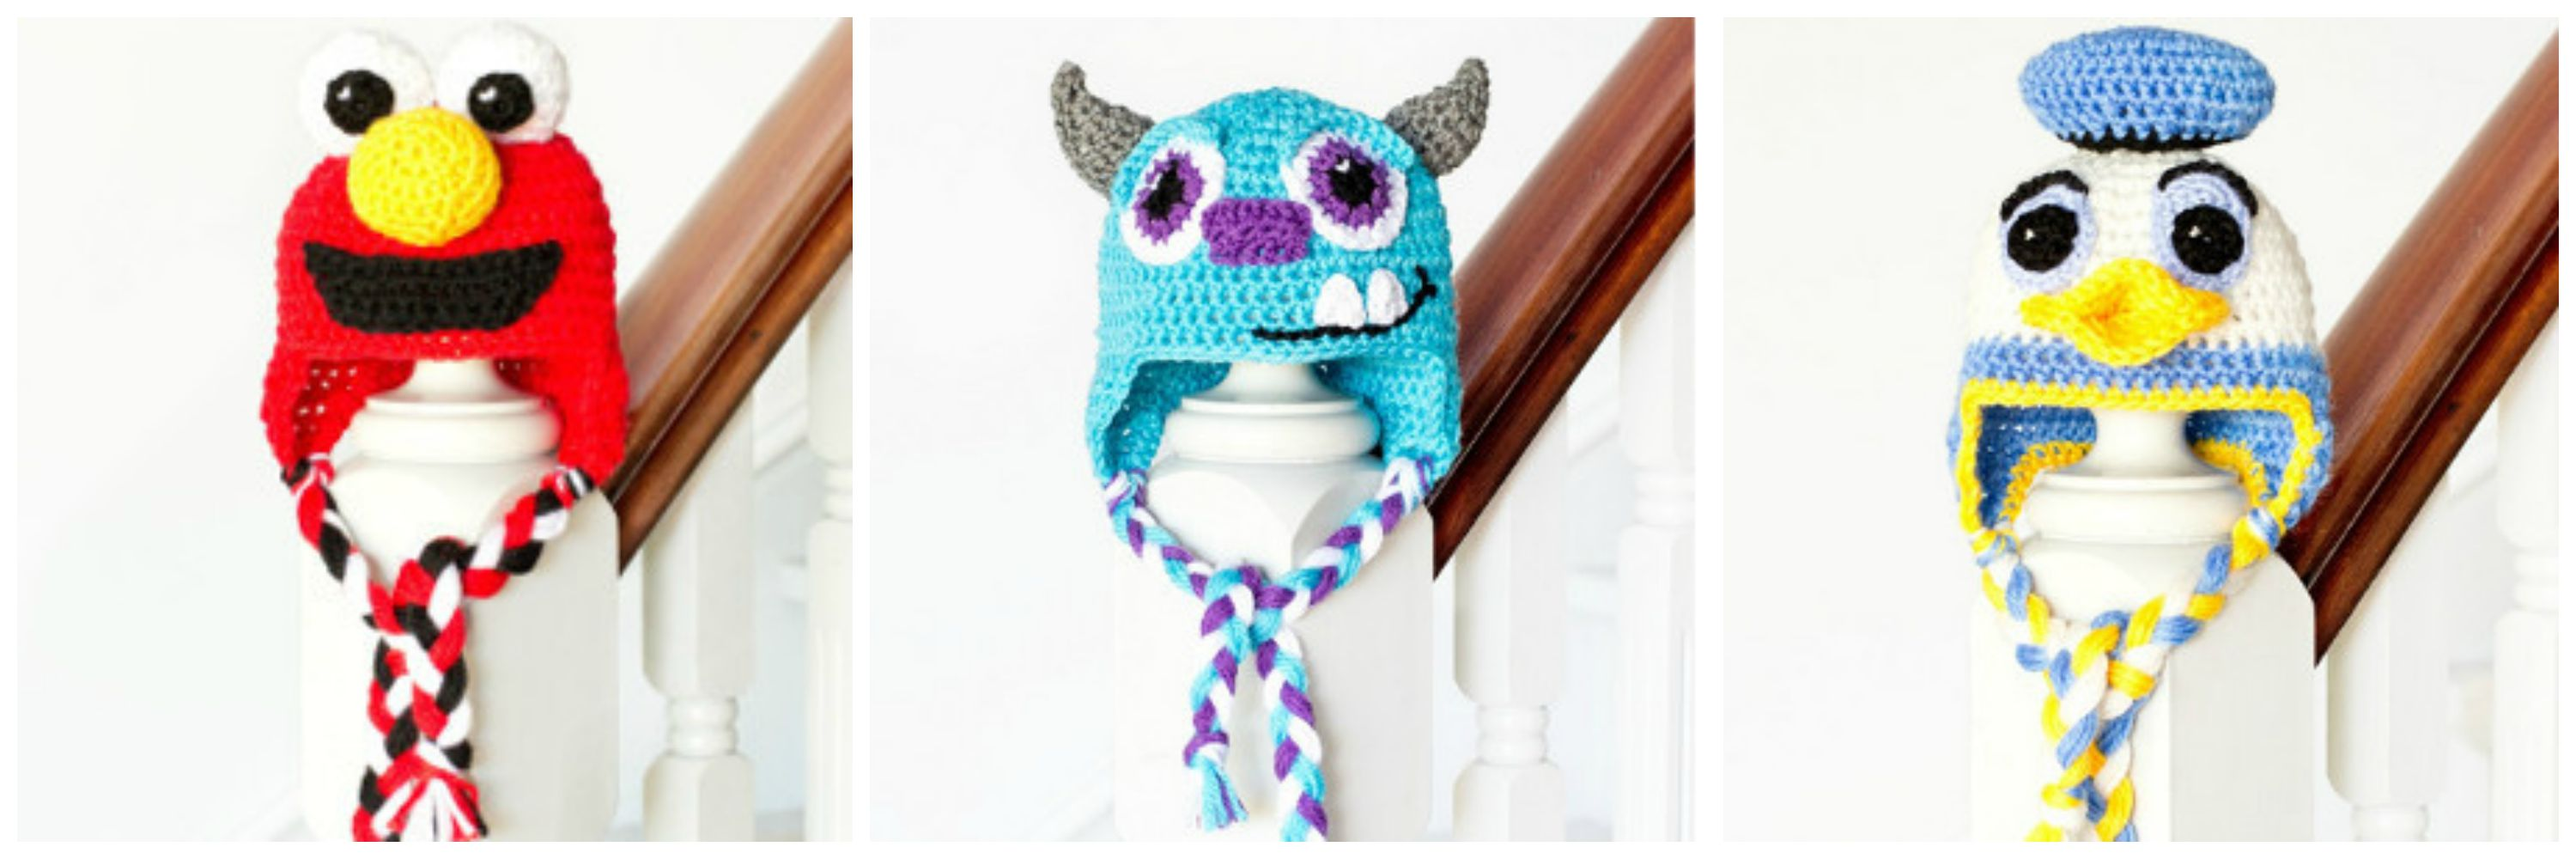 13 Character-Inspired Crochet Baby Hat Patterns - Stitch and Unwind